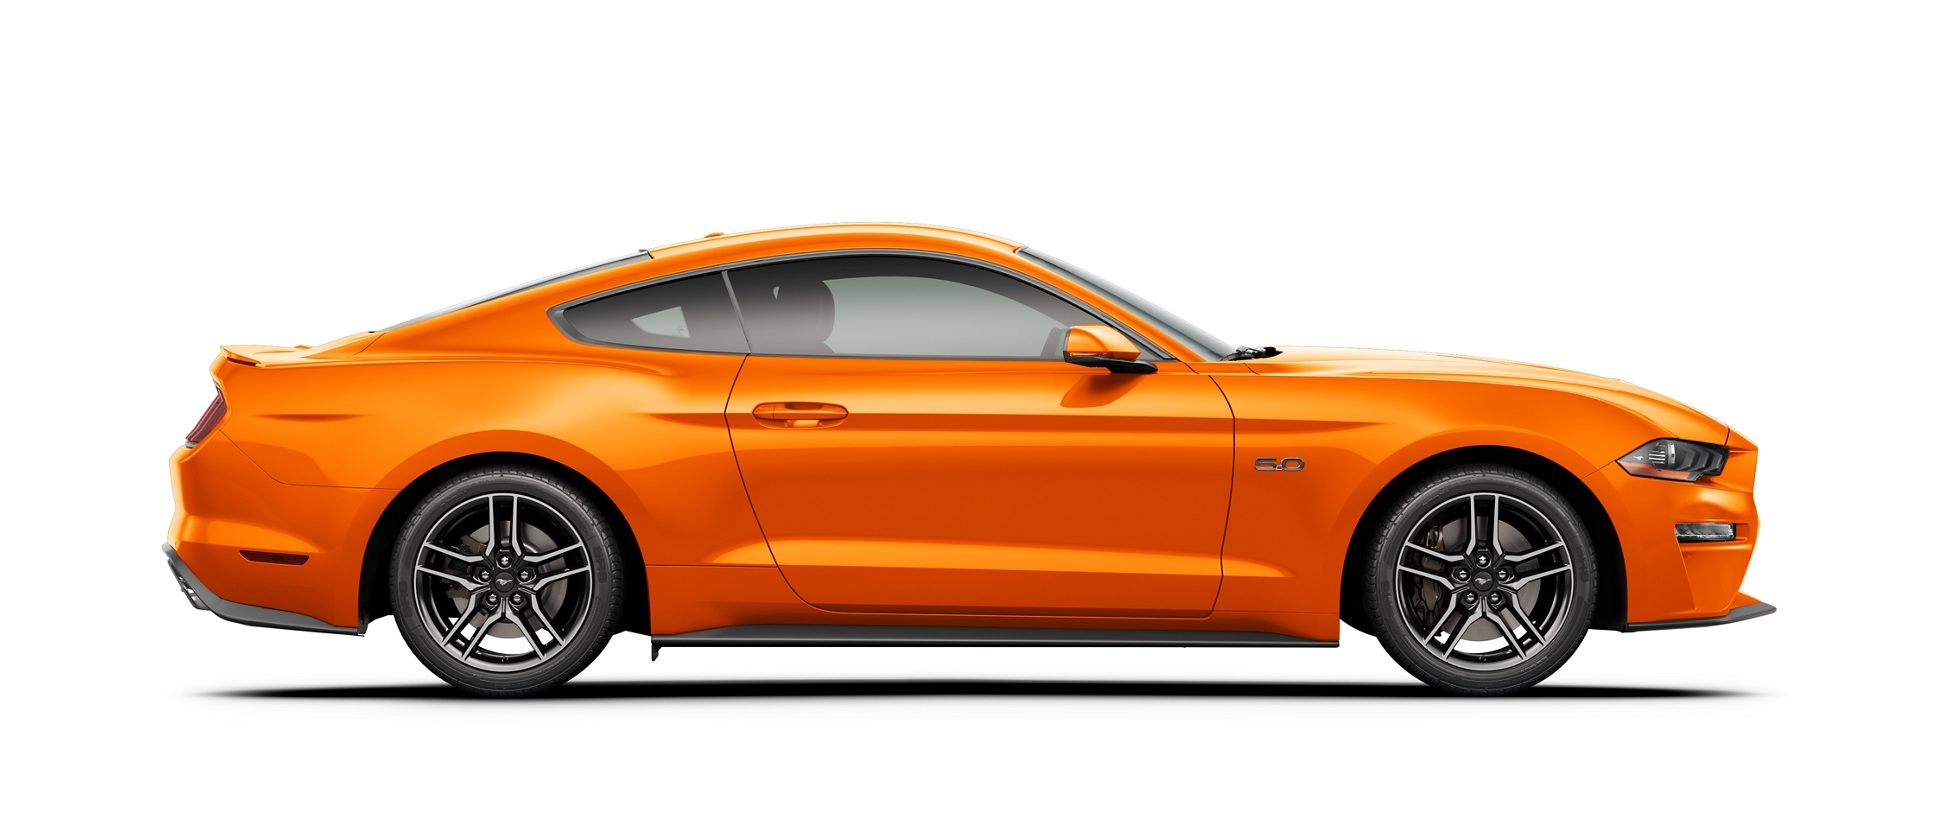 2020 Ford Mustang side profile